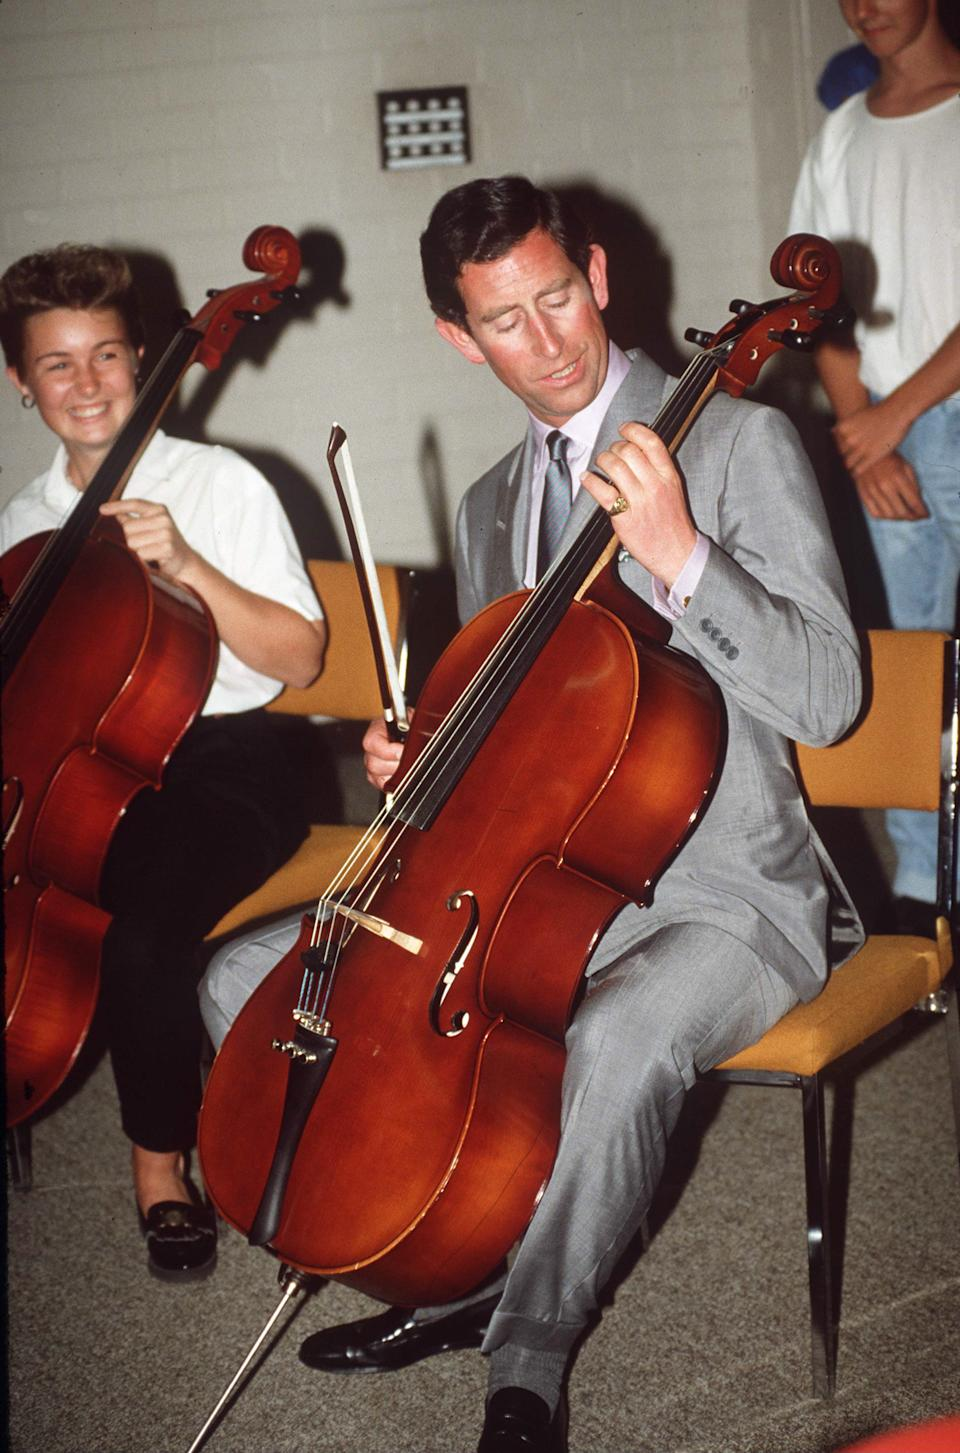 The Prince Of Wales Playing The Cello At The School Of Music, Victorian College Of Arts, melbourne In Australia